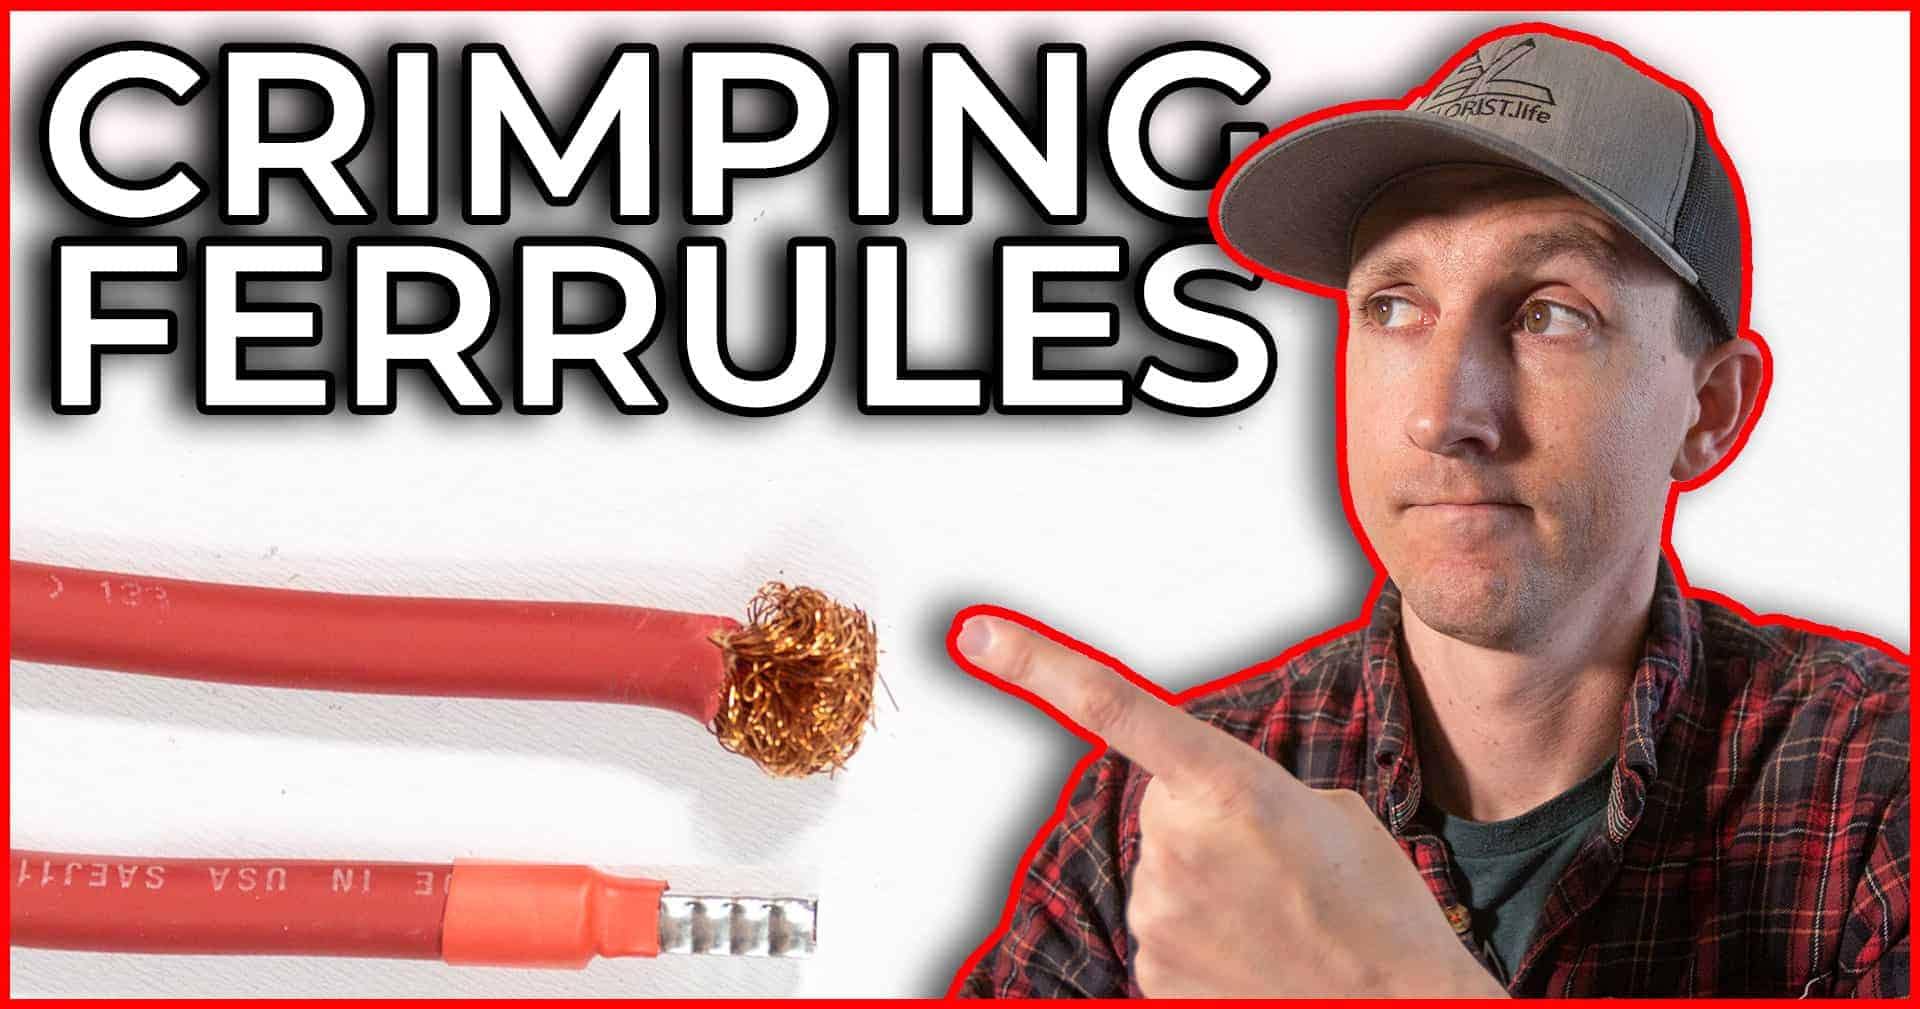 How To Crimp A Wire Ferrule